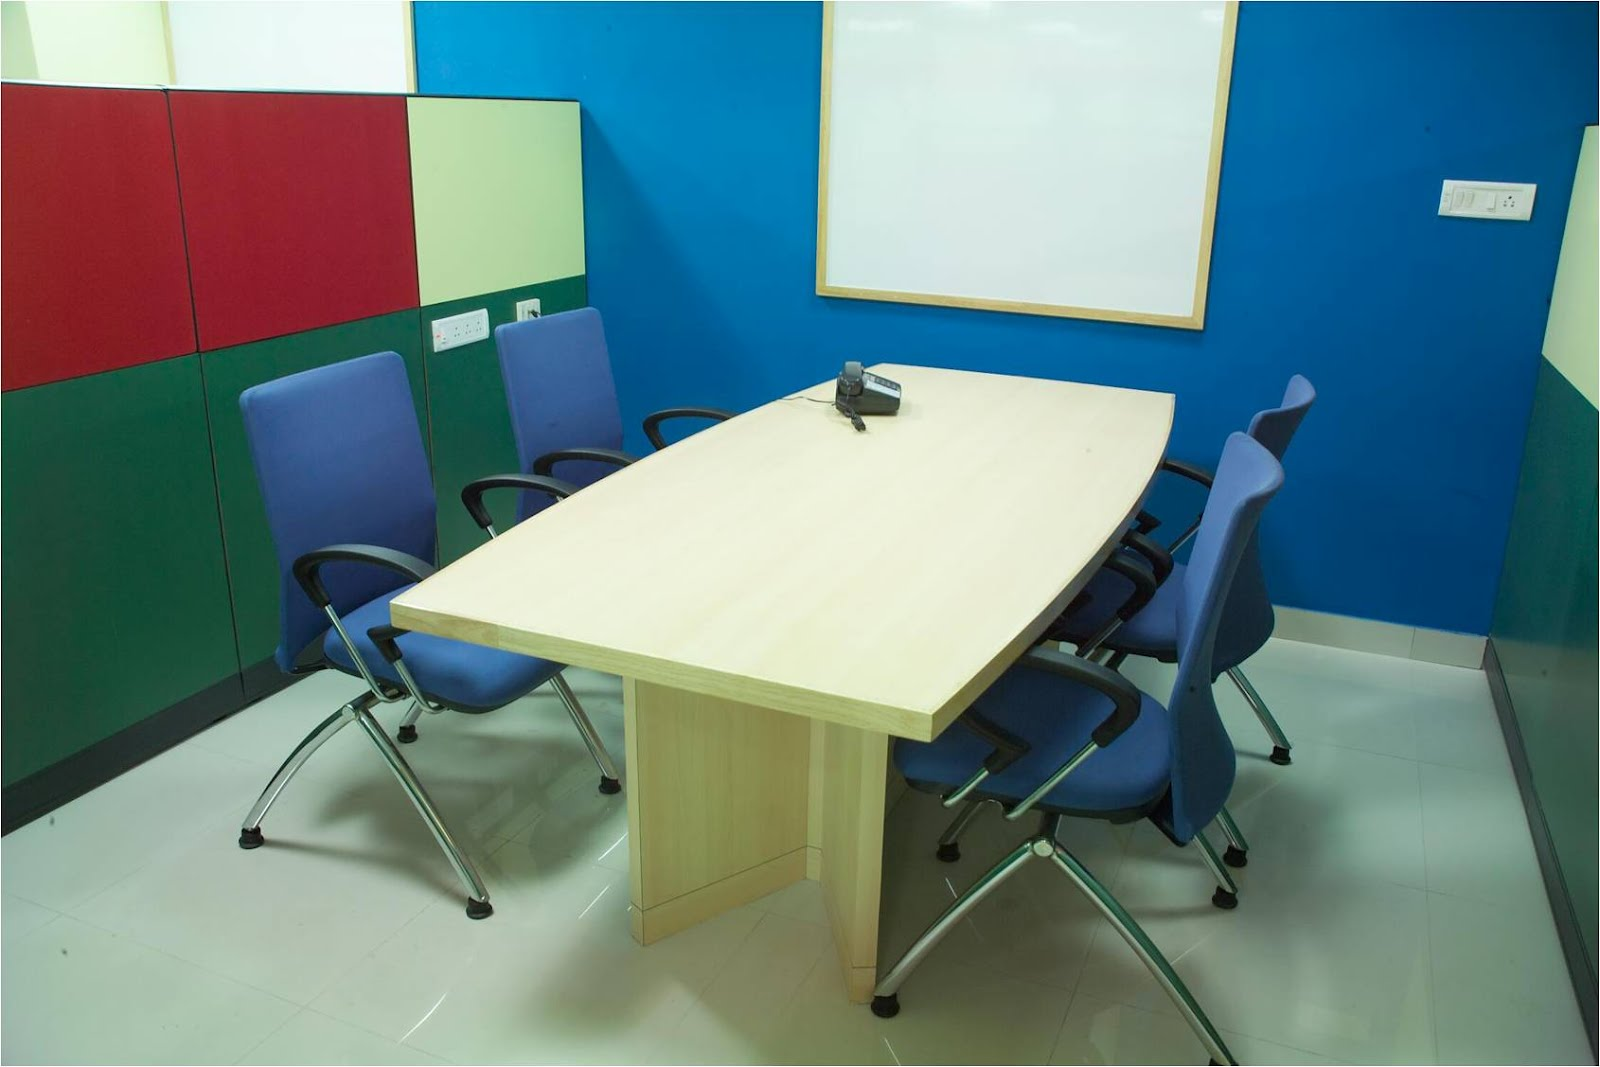 Mini Conference Table For Sale In Hyderabad - Mini conference table